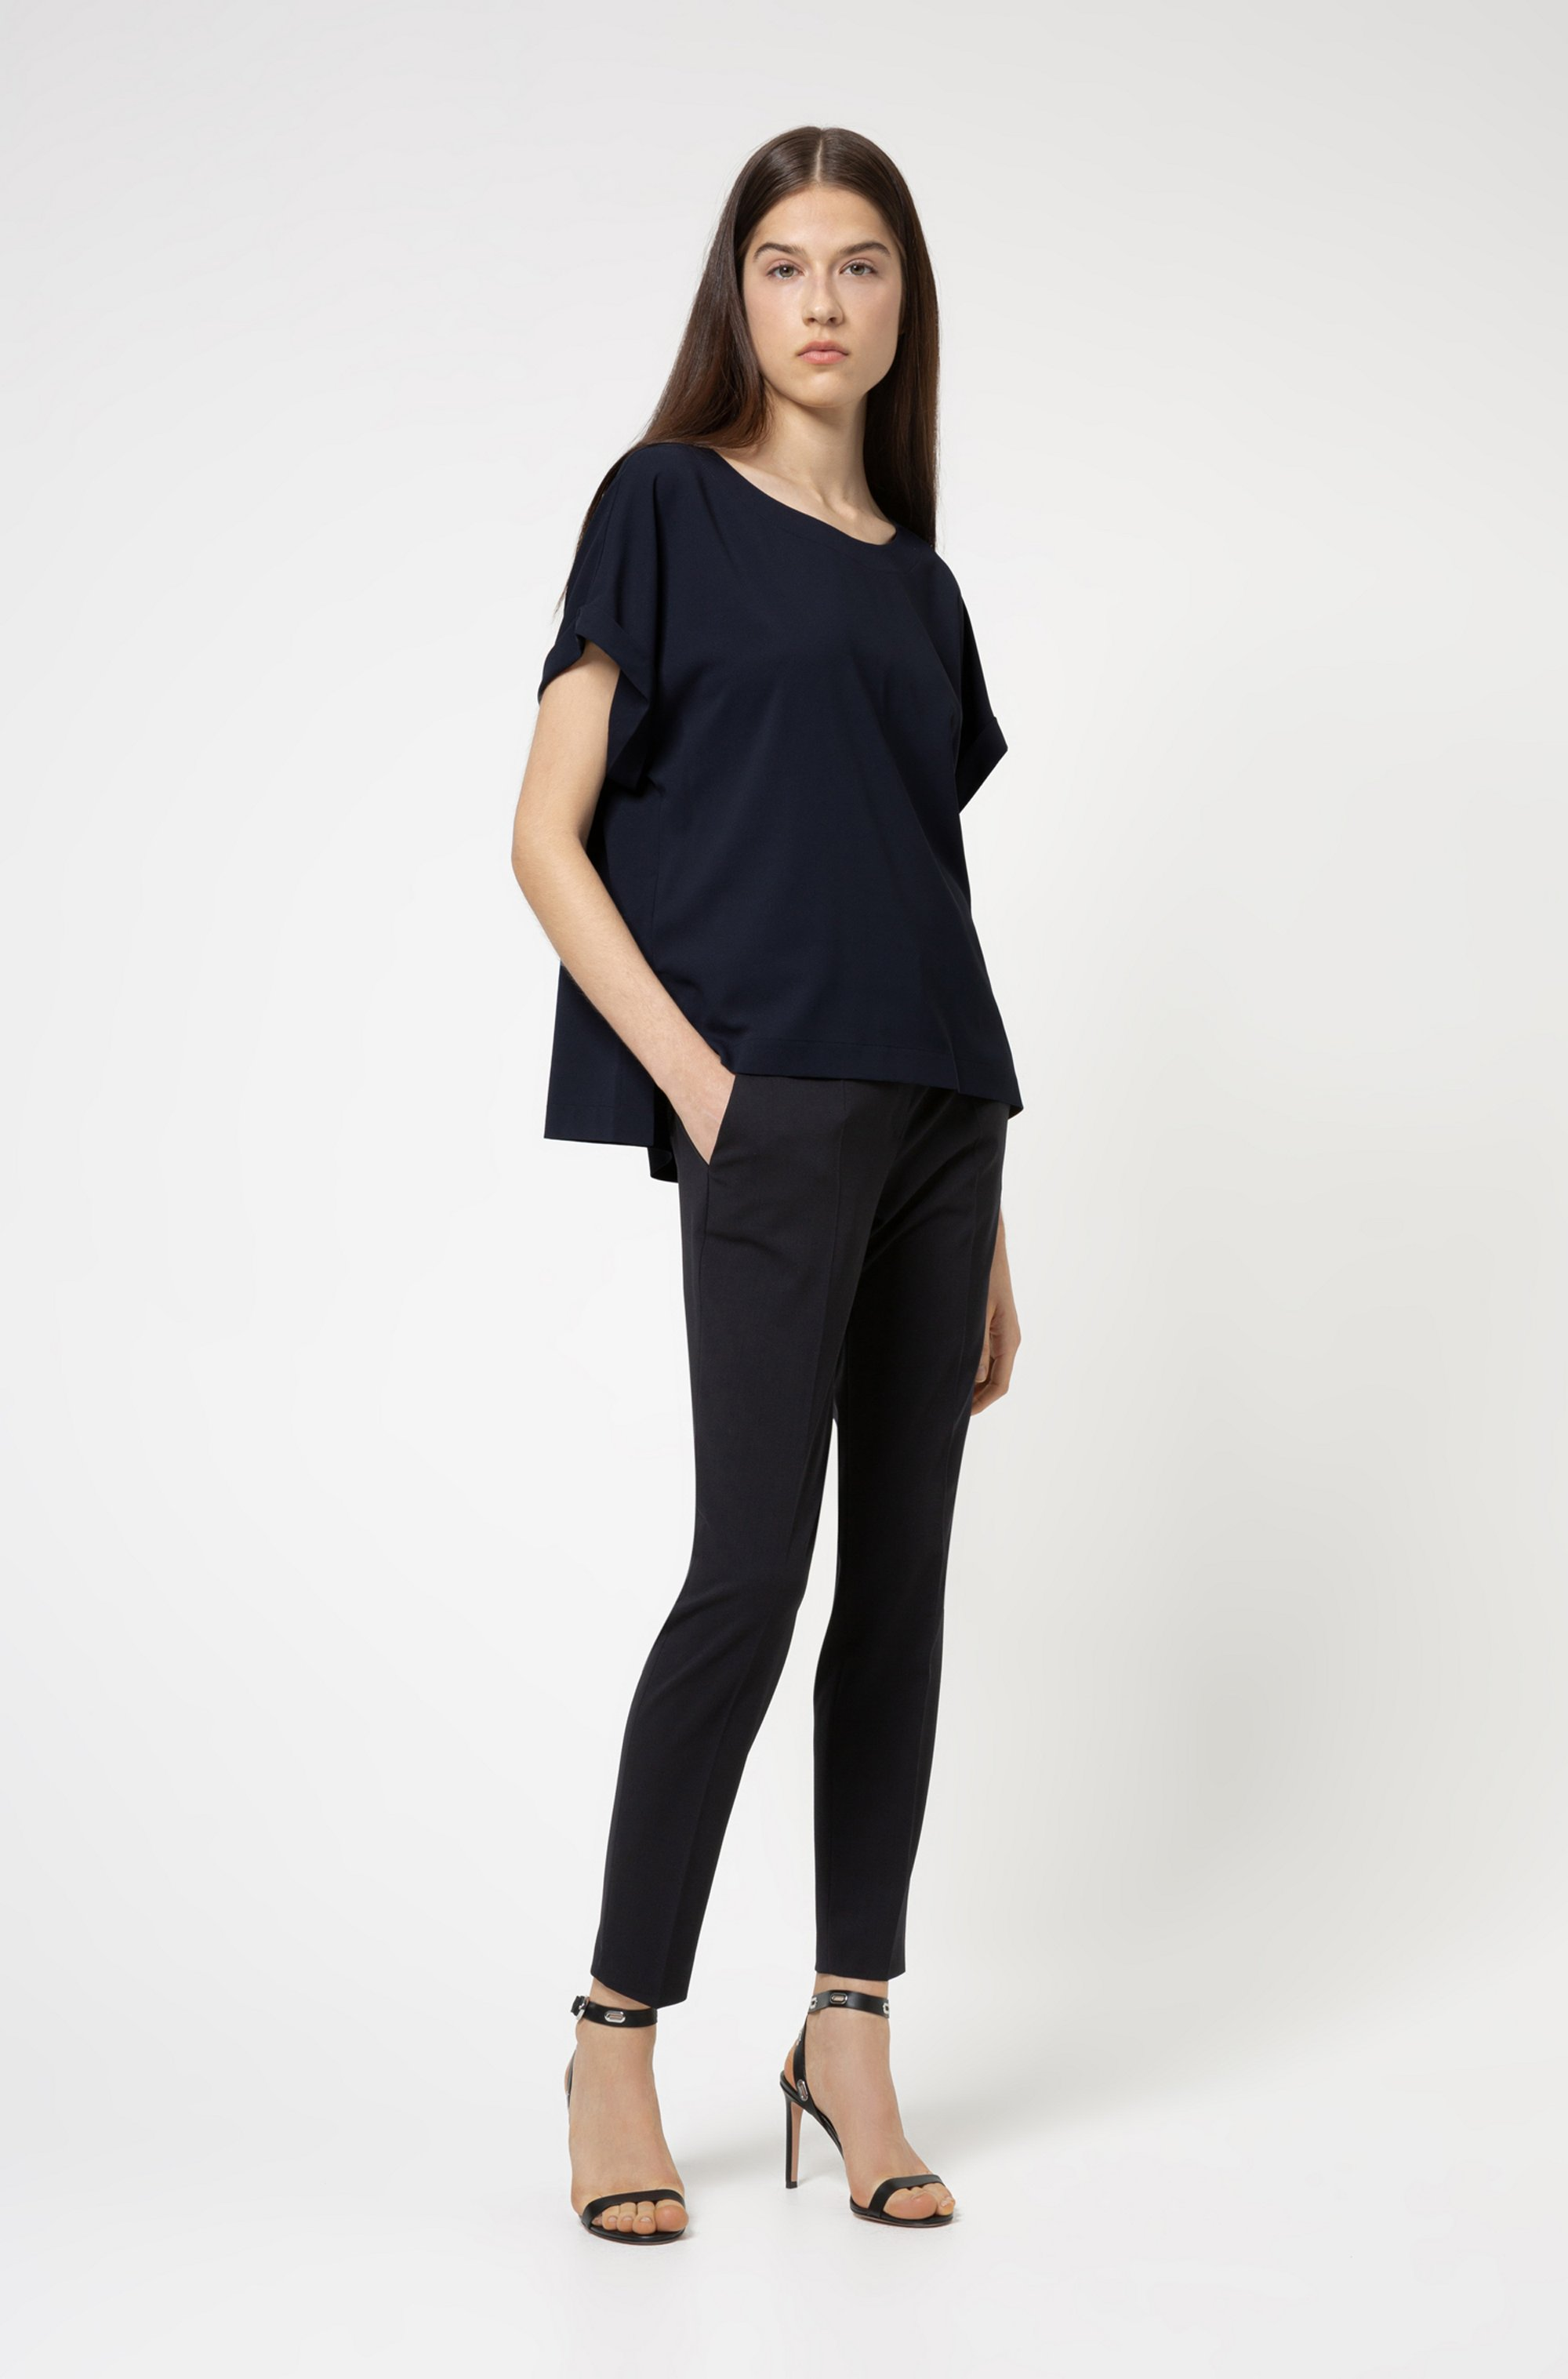 Relaxed-fit top with wide neckline